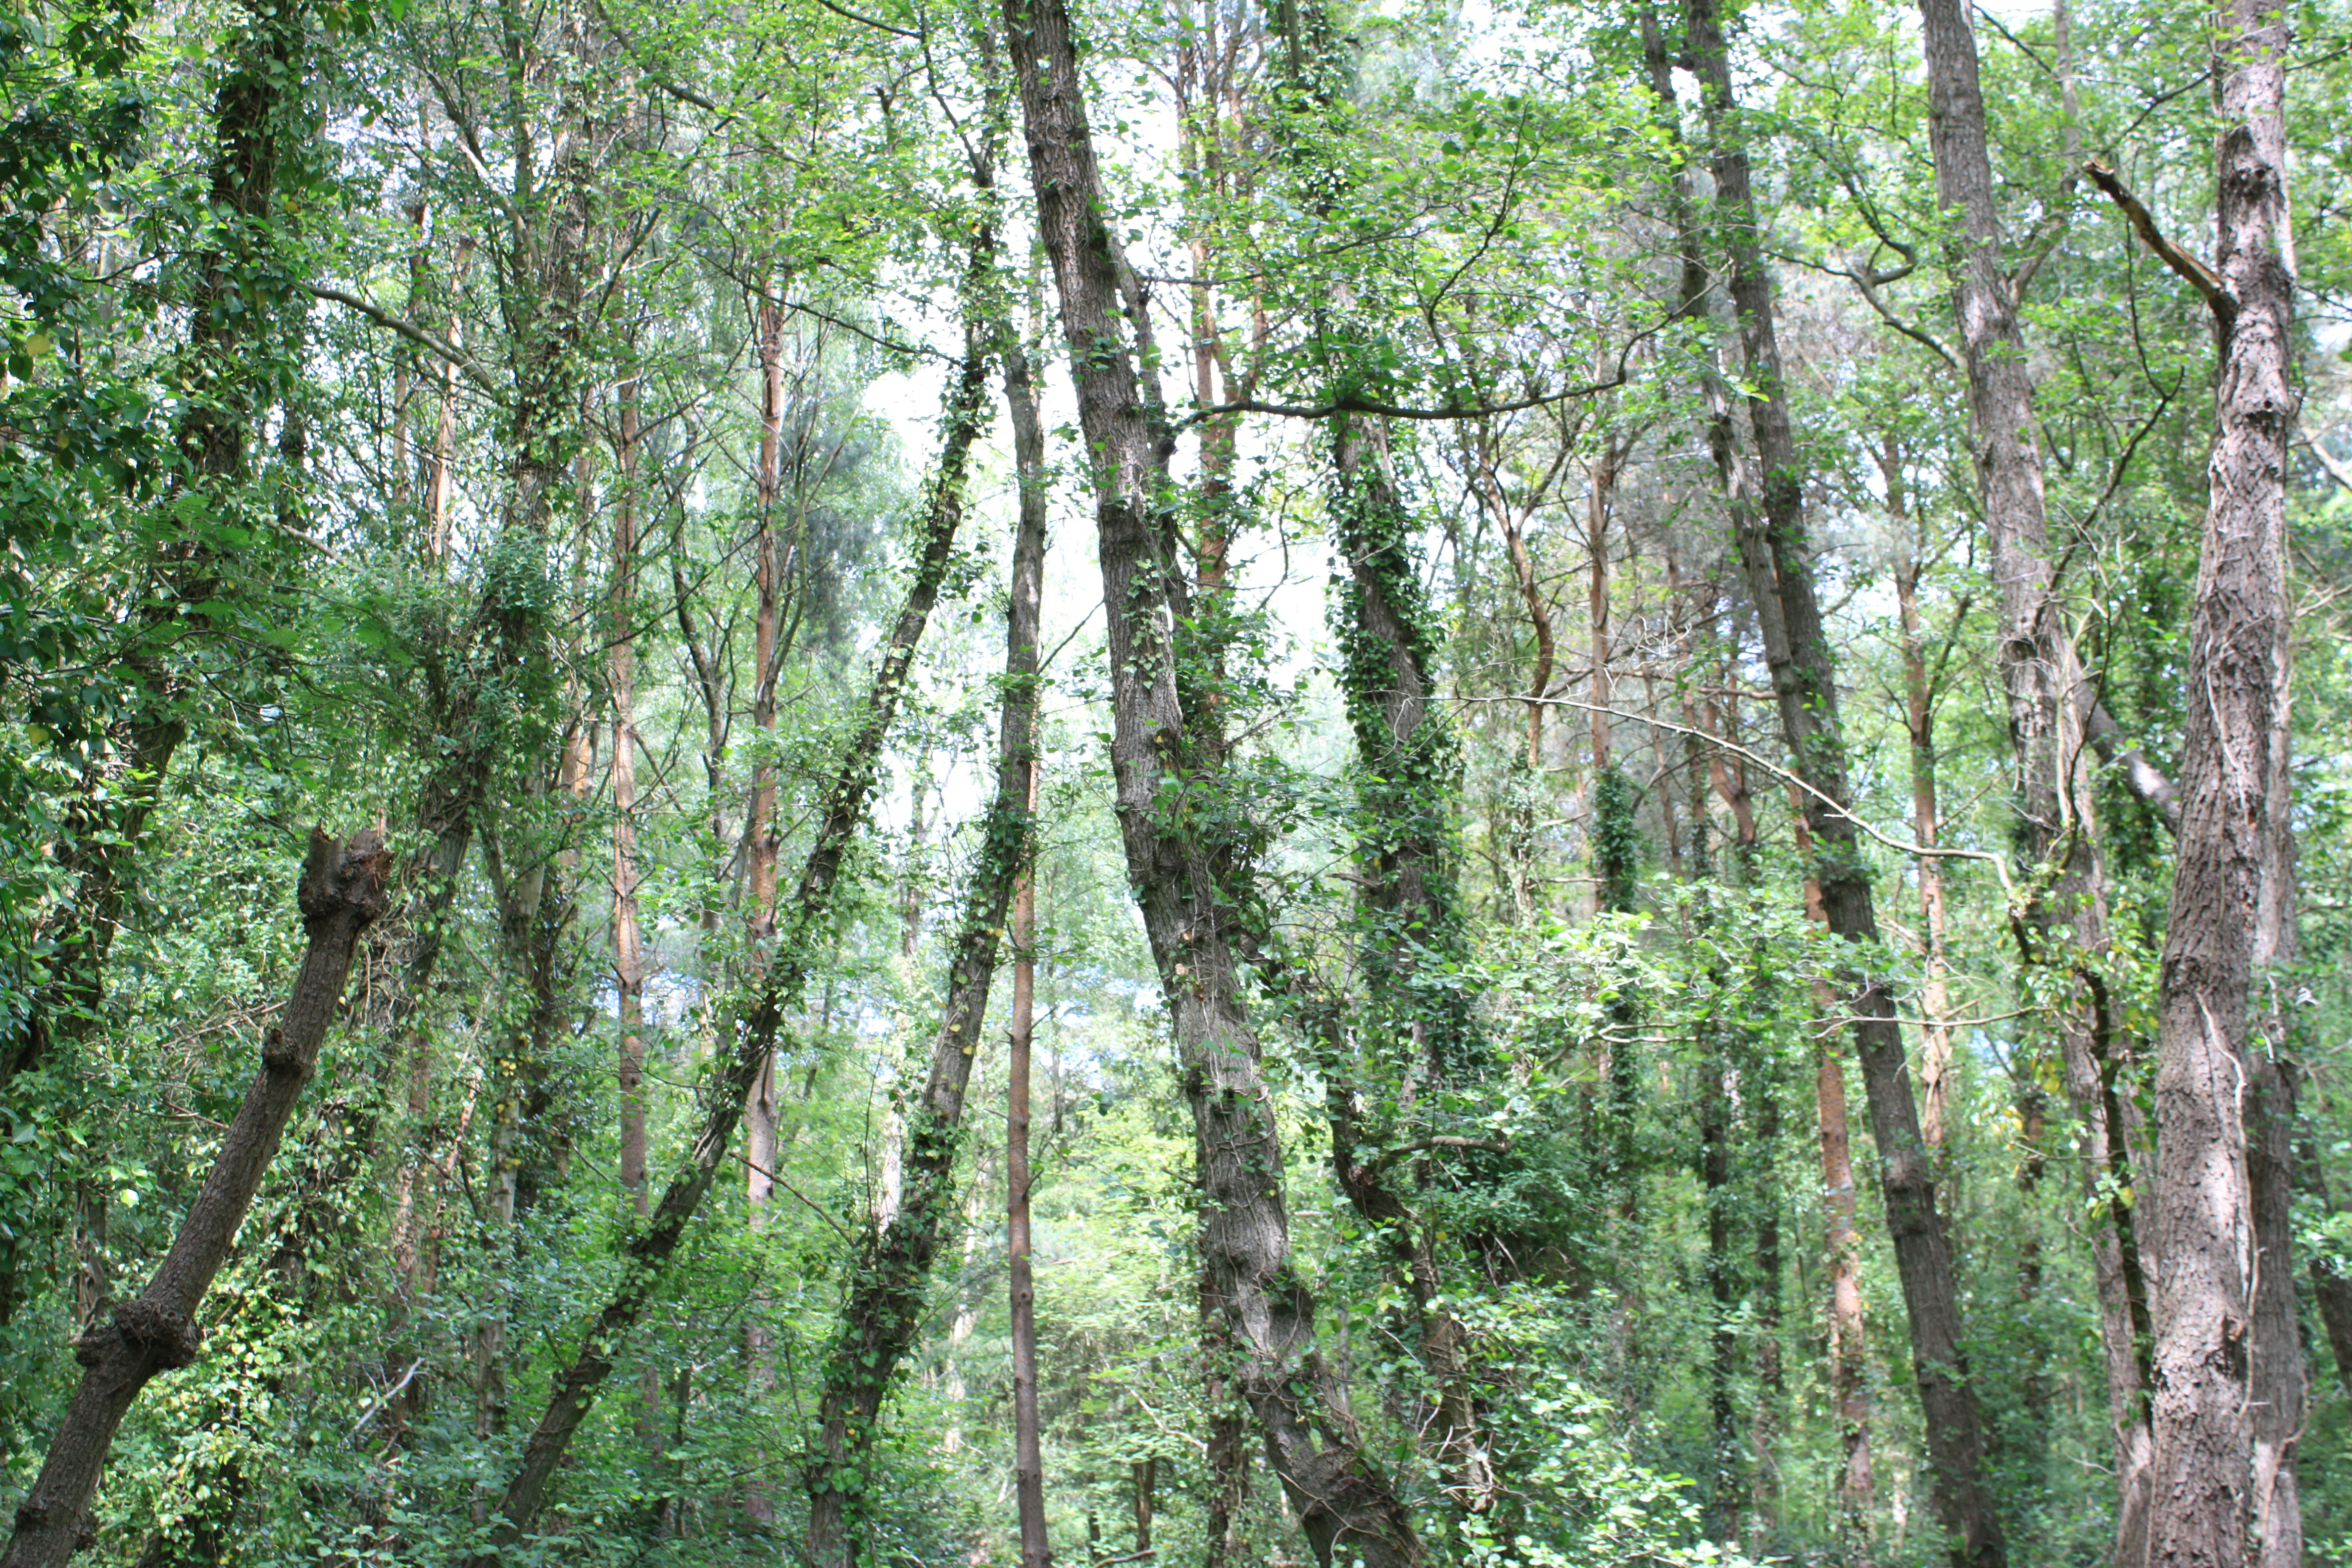 Trees, Forest, Green, Plants, Woods, HQ Photo